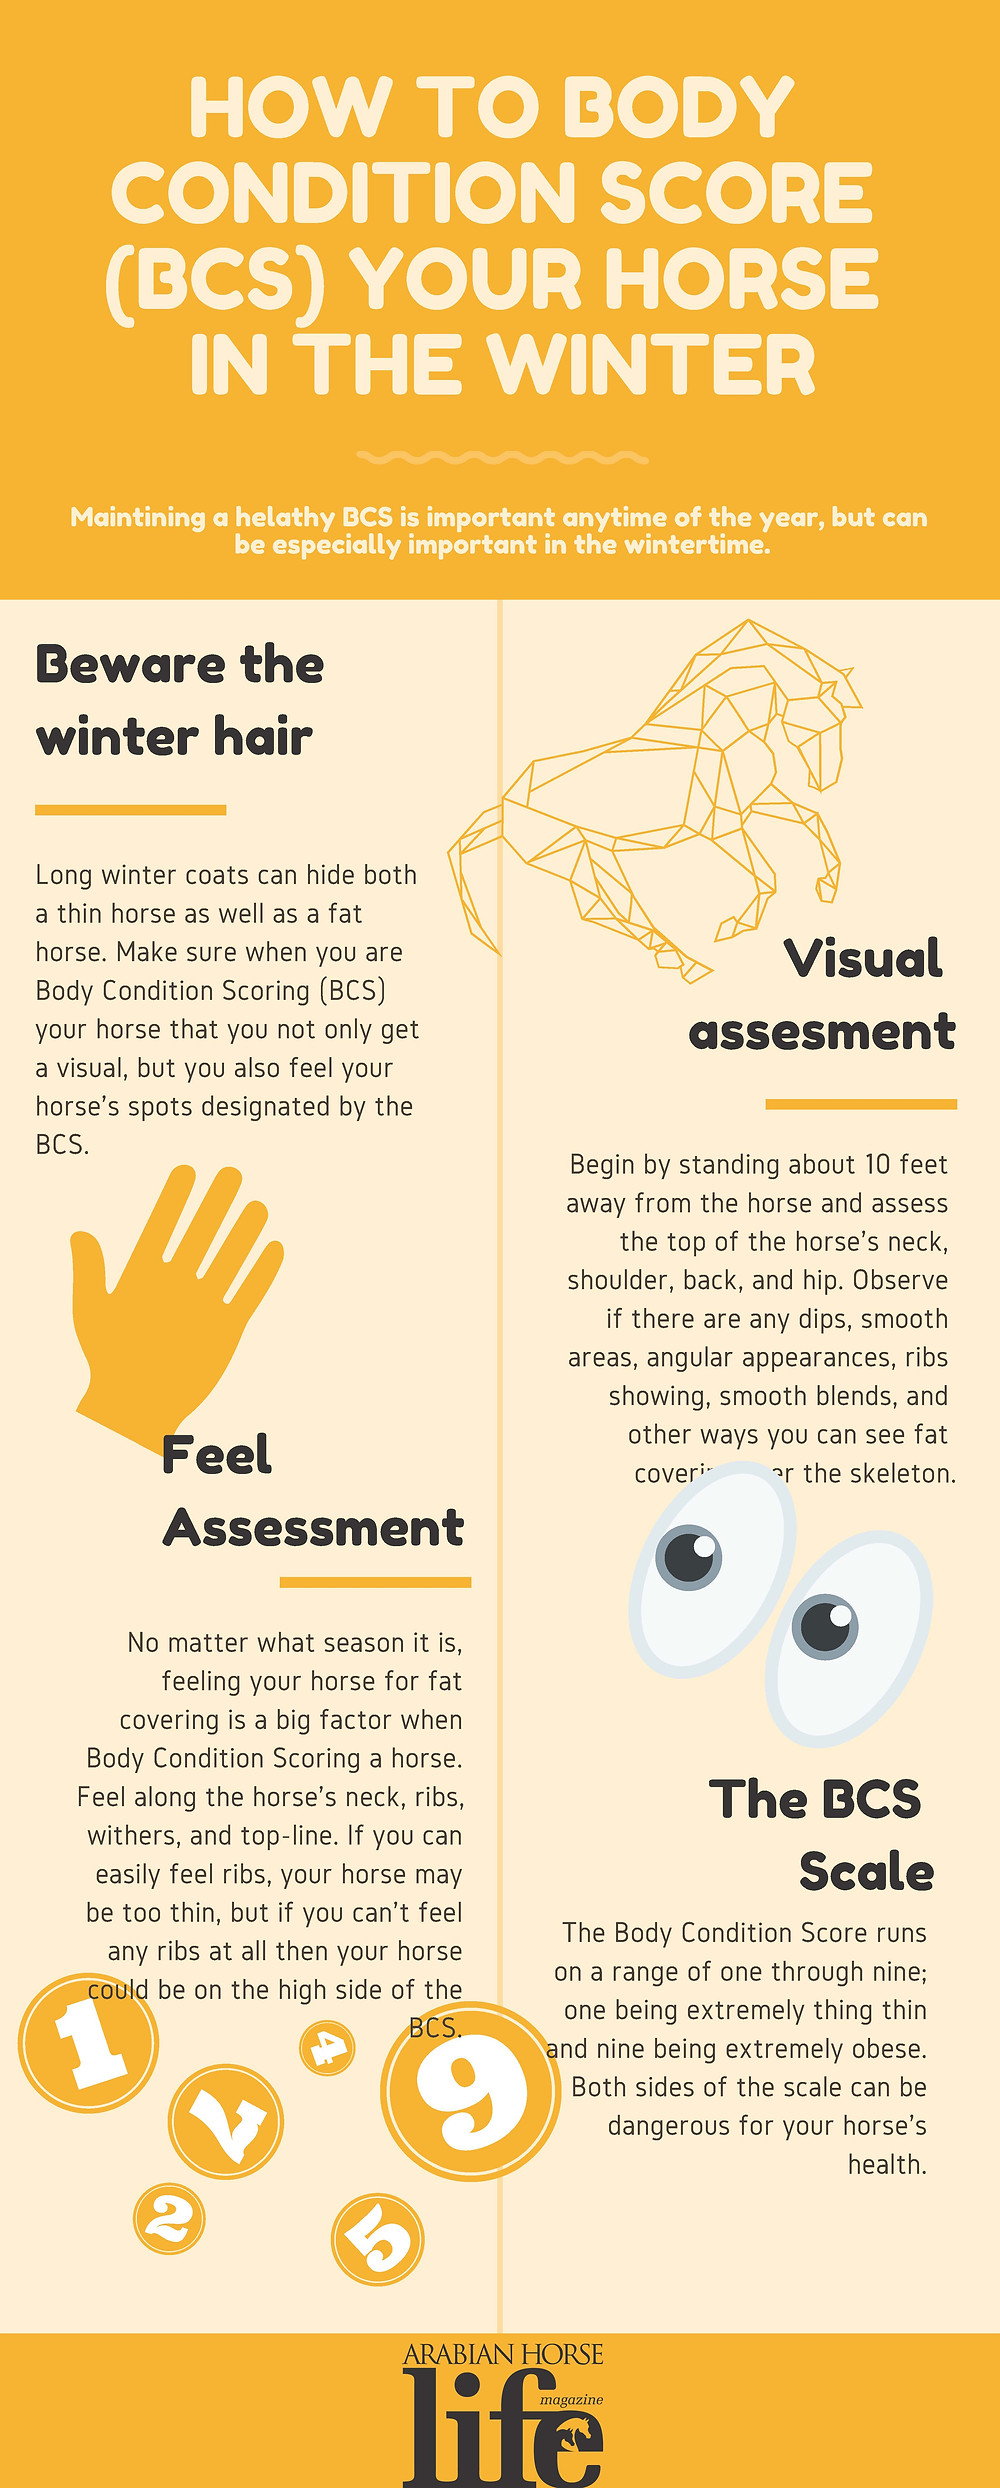 How to Body Condition Score Your Horse in the Winter